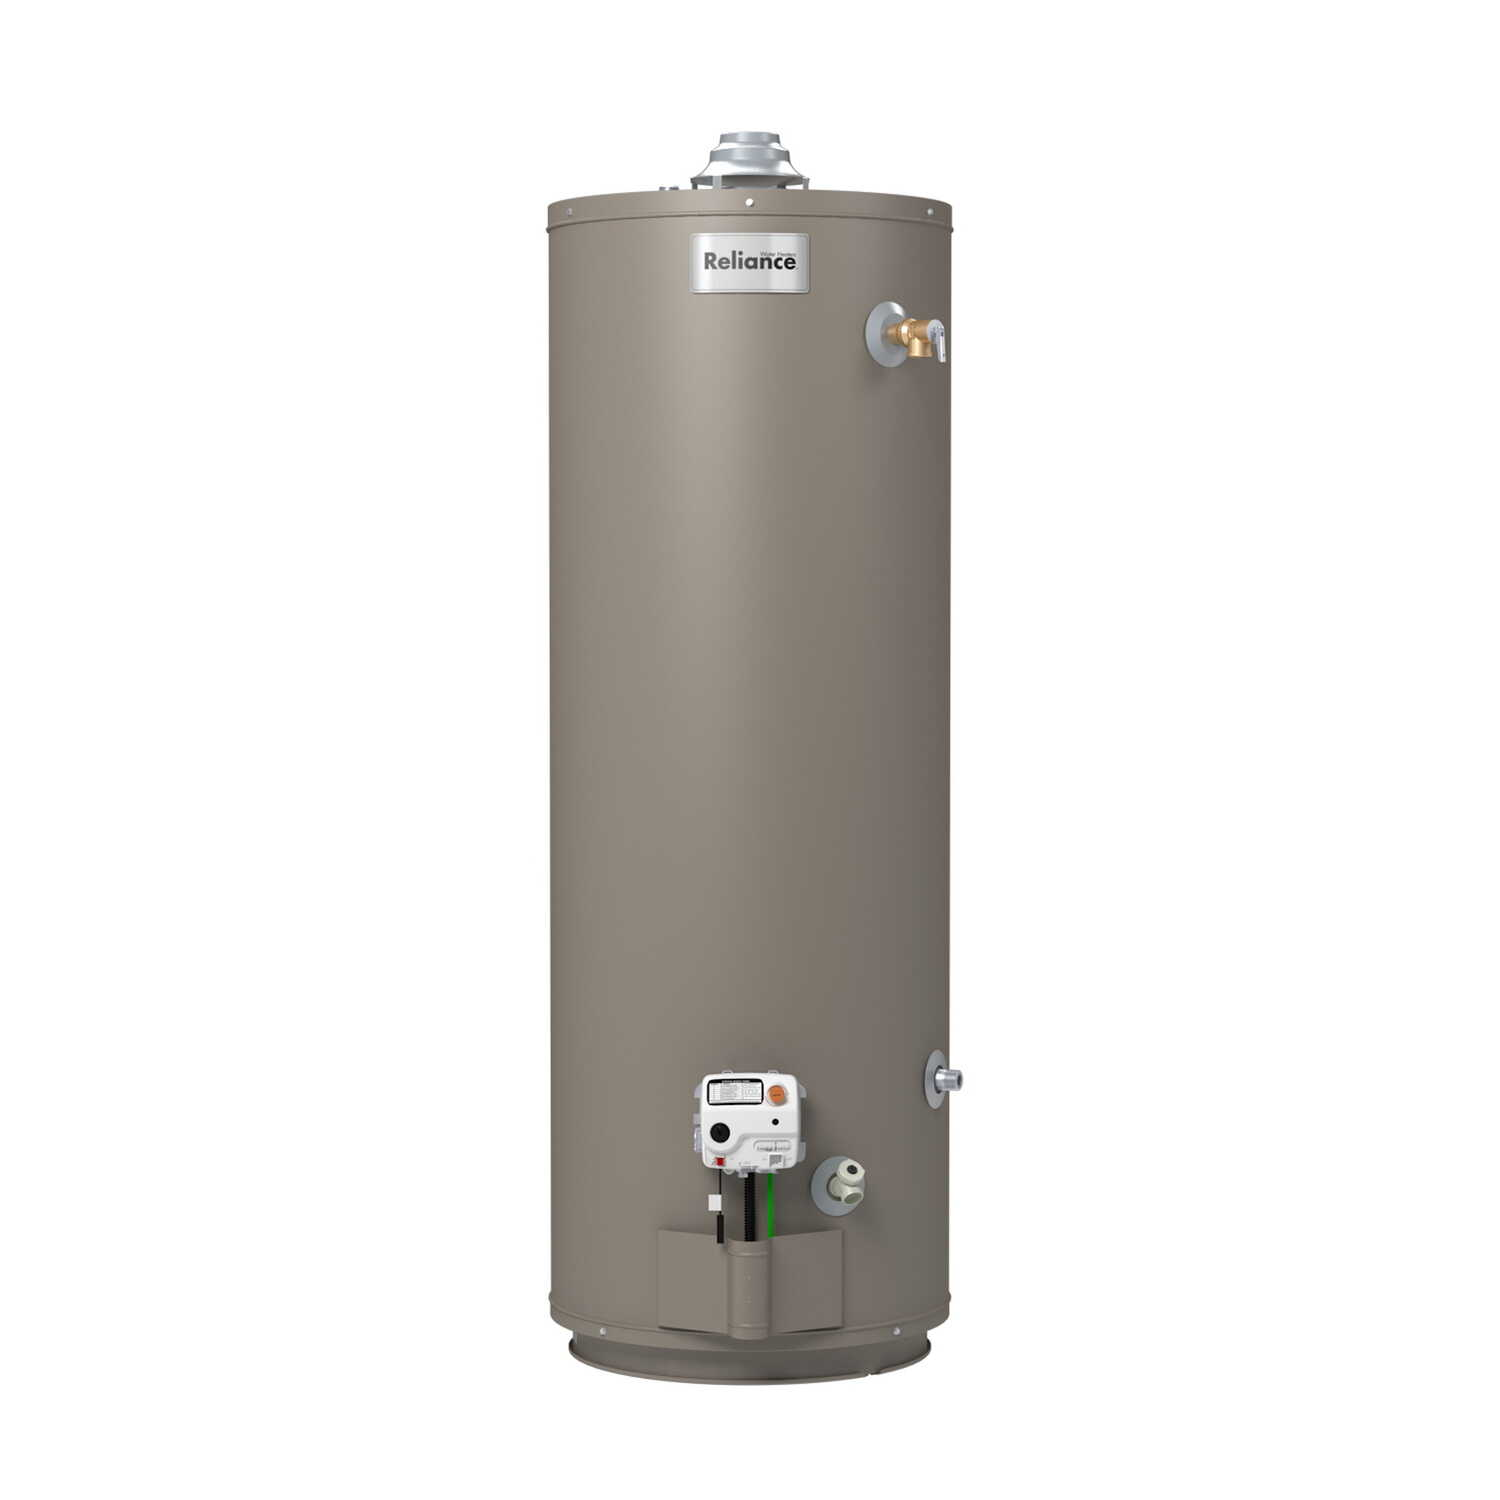 Reliance  Mobile Home Water Heater  Natural Gas/Propane  30 gal. 61-1/2 in. H x 18 in. L x 18 in. W